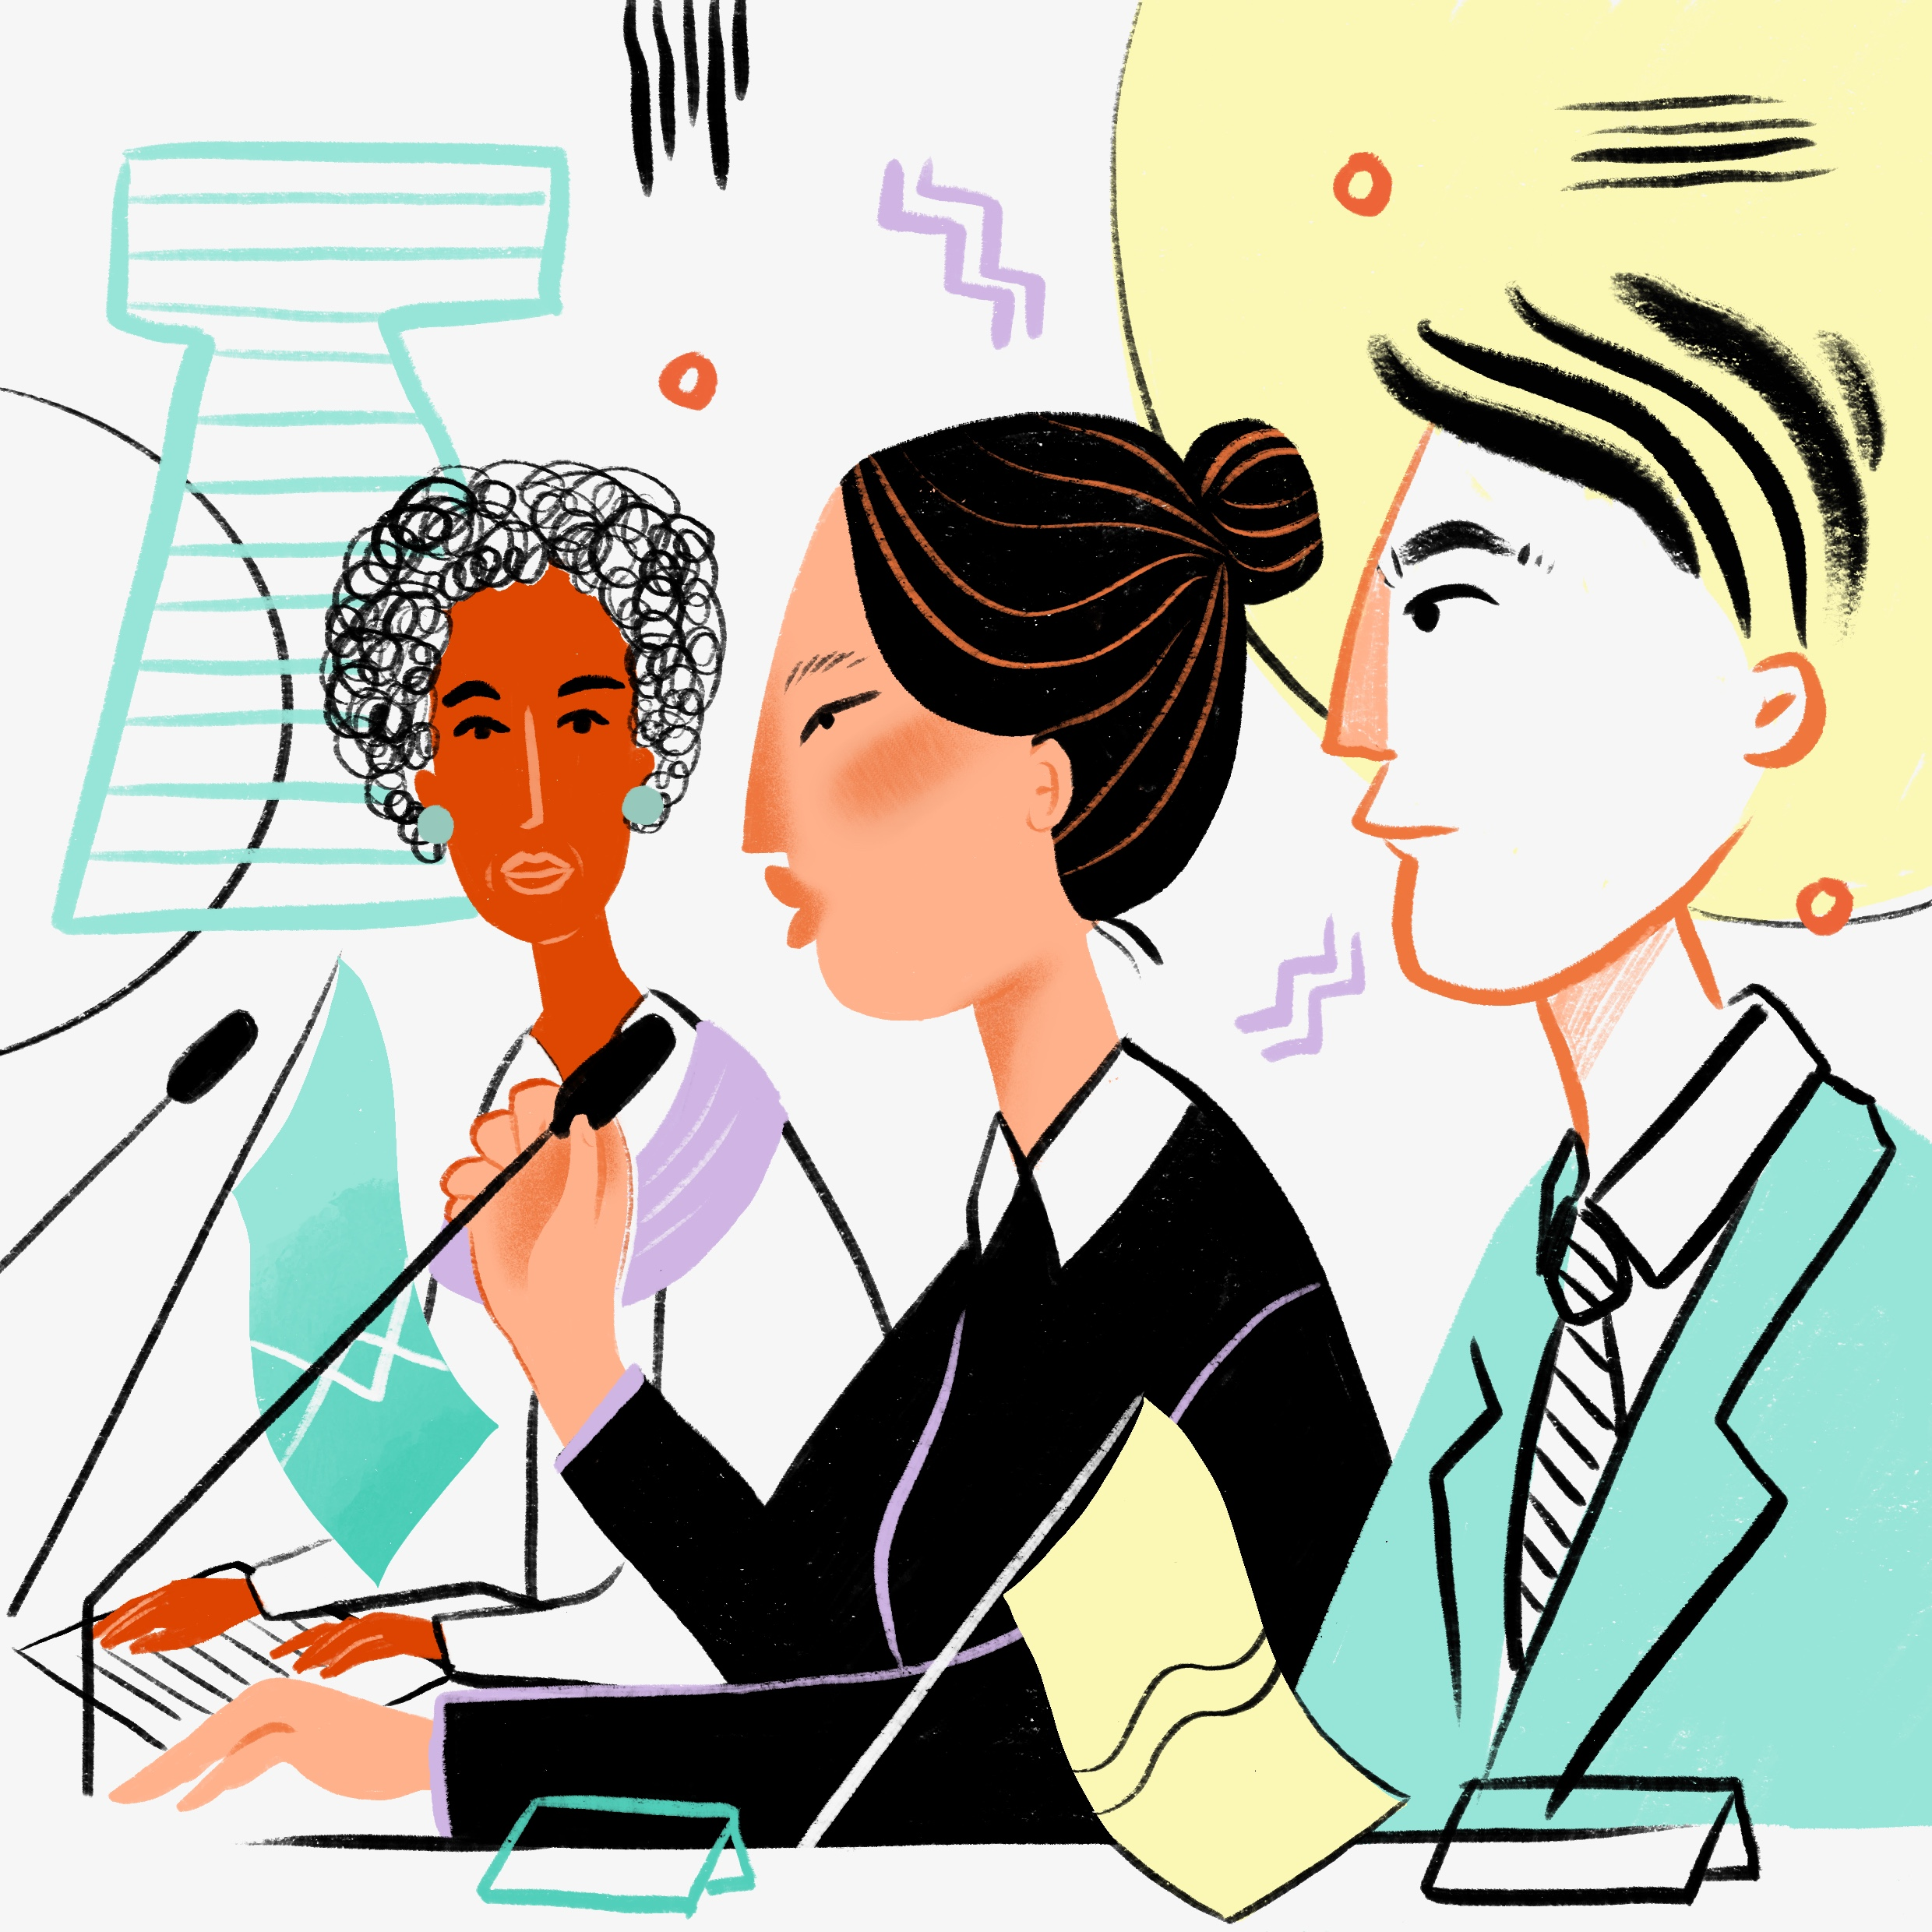 Illustration of three women speaking into microphones, as though partaking in a panel discussion.